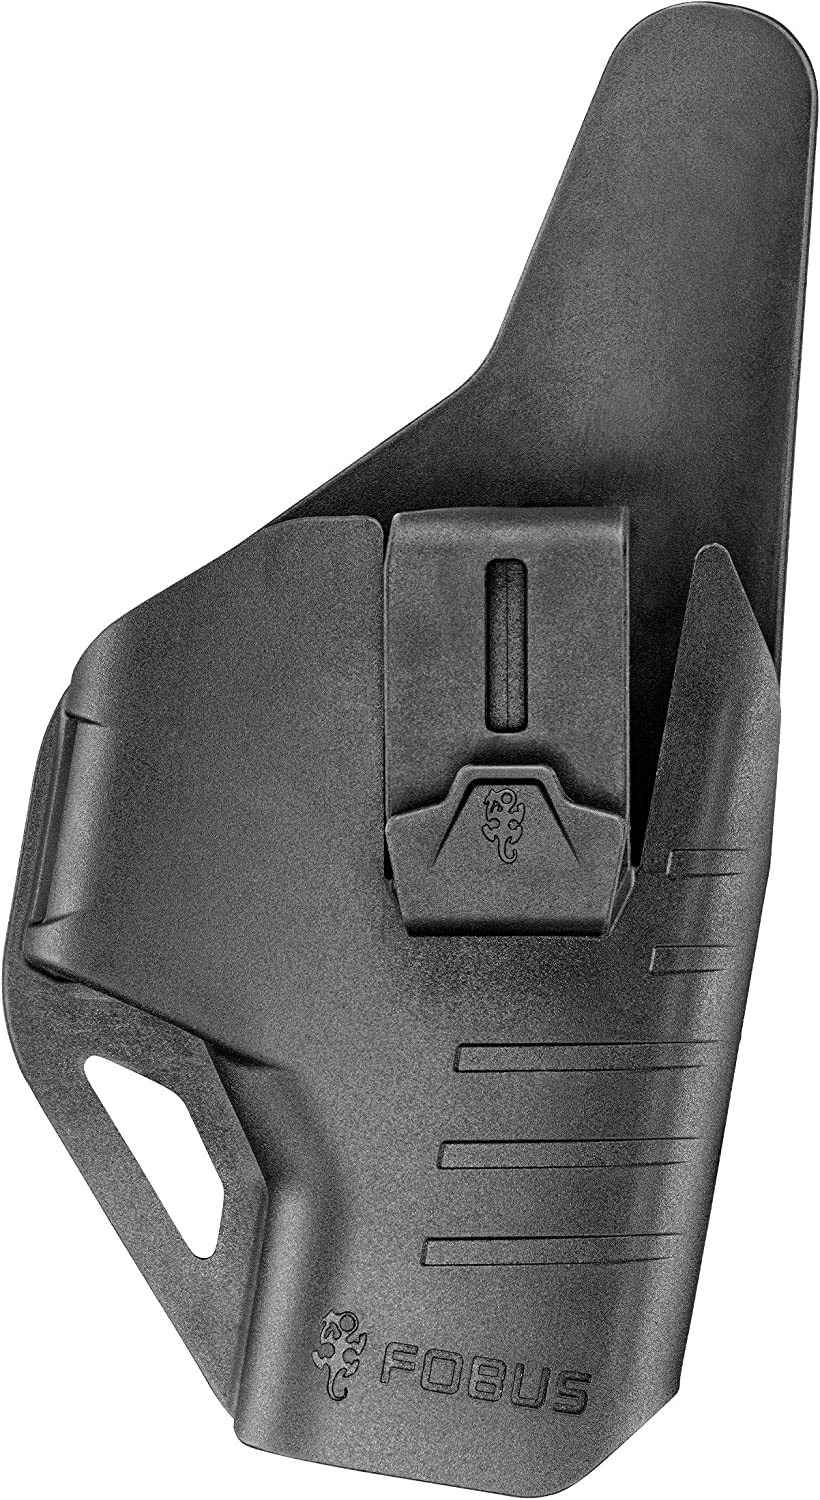 Fobus C Sale special price Complete Free Shipping Series Concealed Carry IWB Pistol Glock for Holster Mode